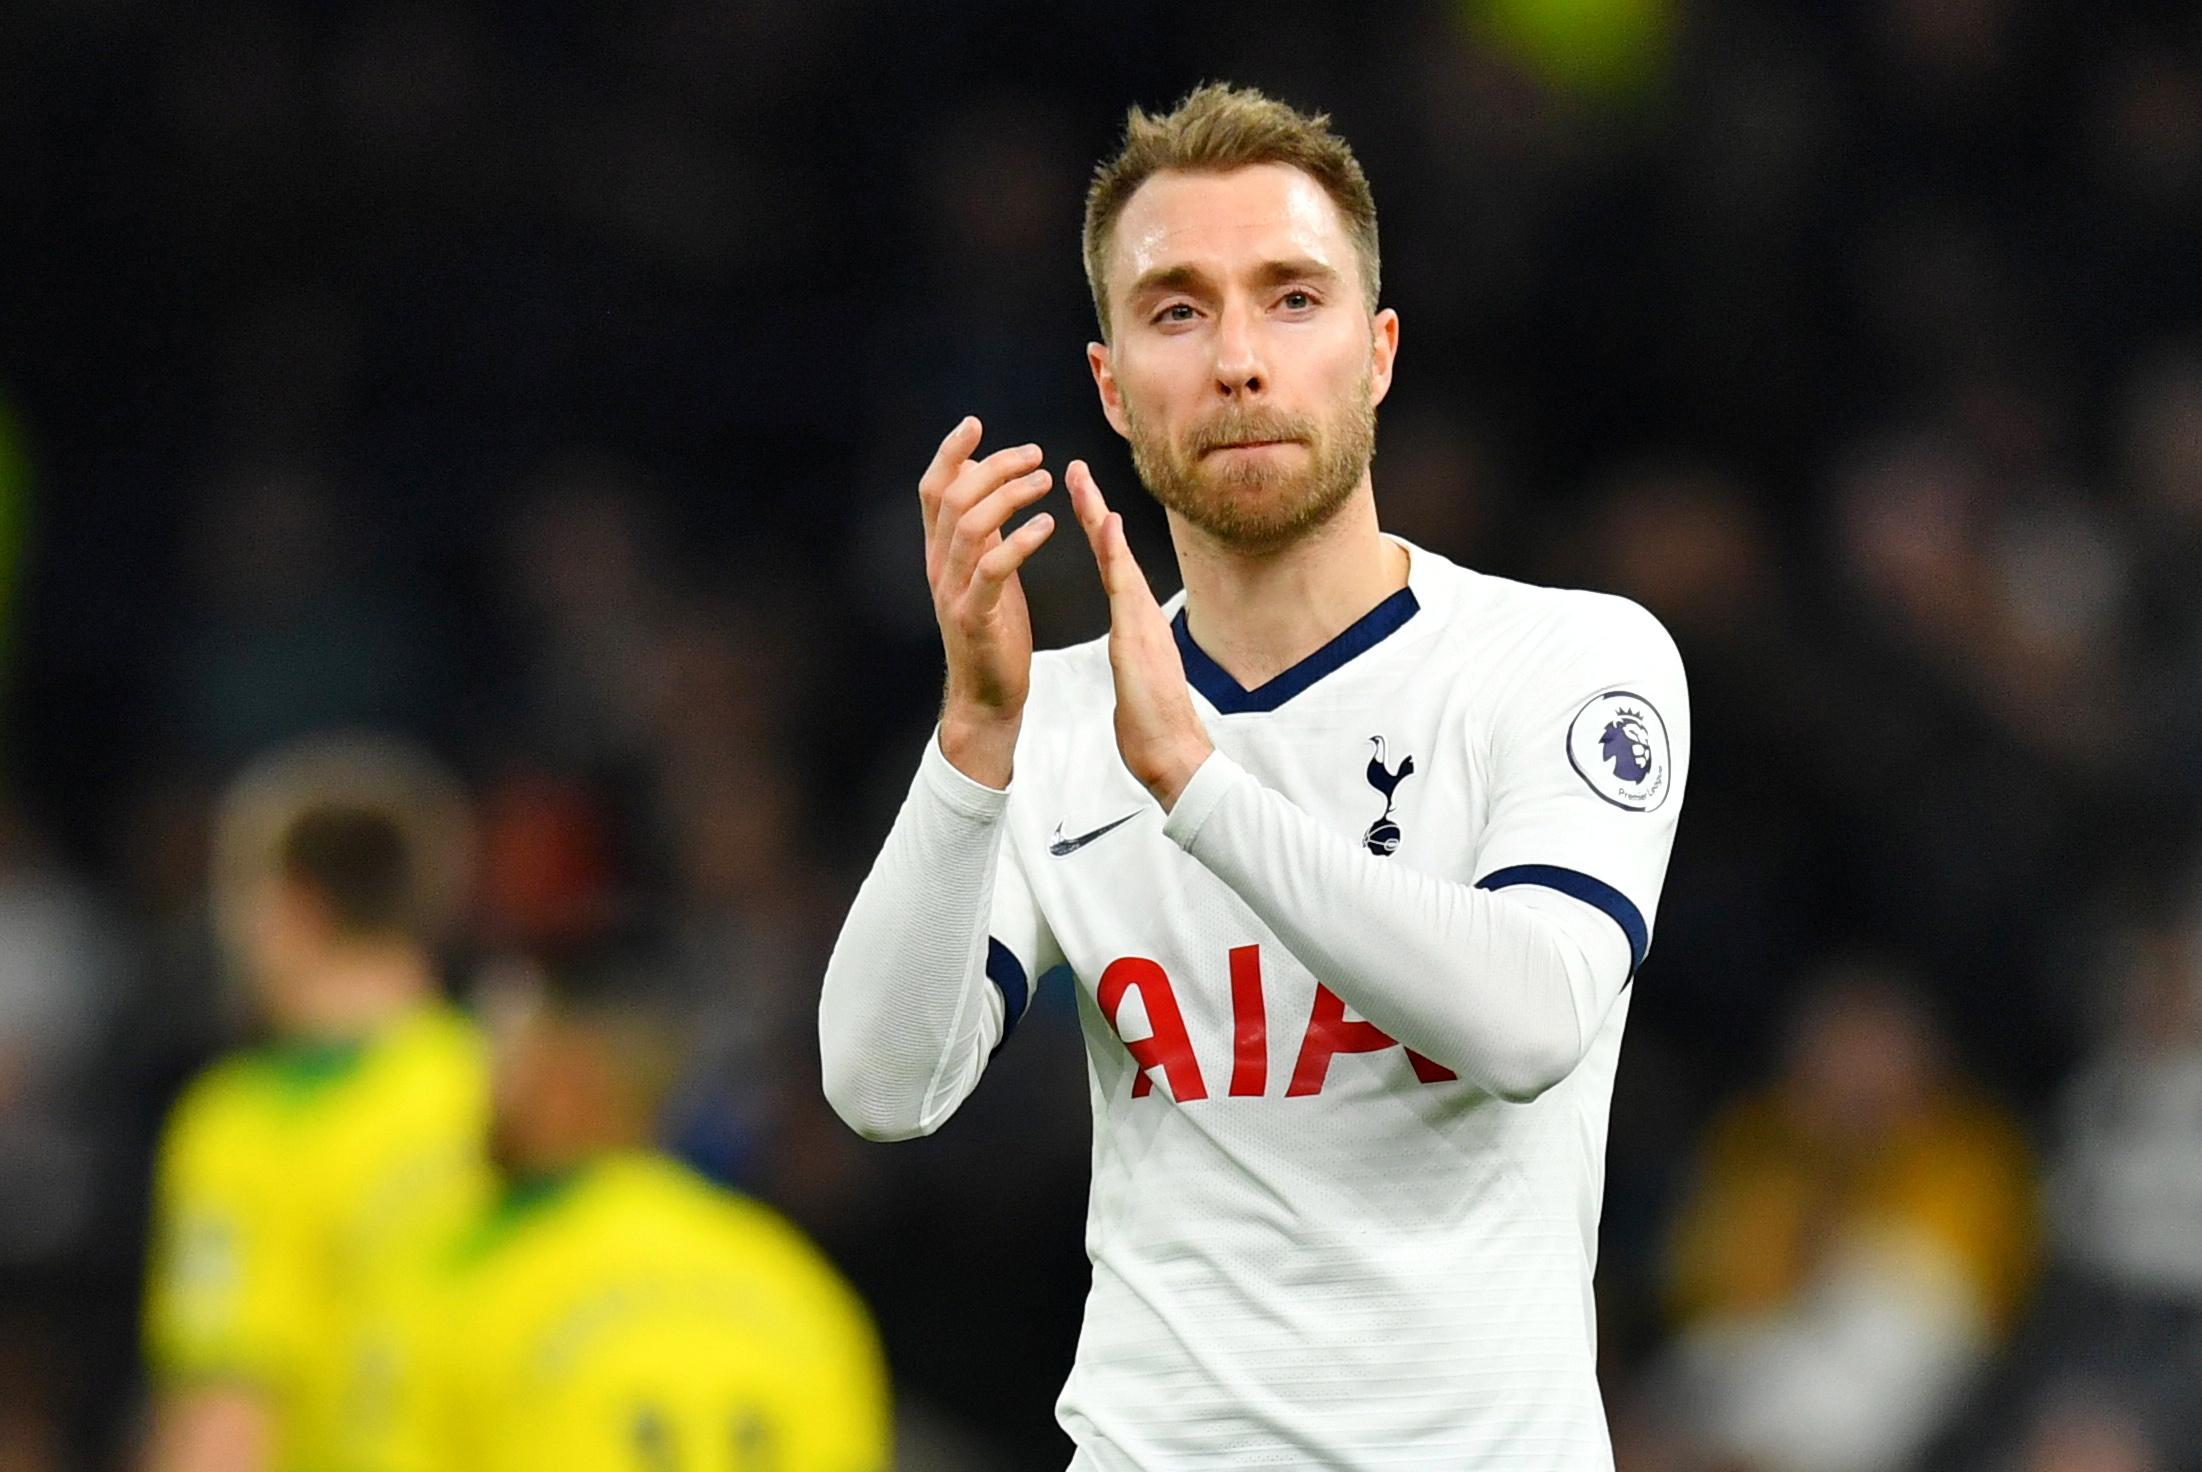 Inter Milan sign Denmark playmaker Eriksen from Spurs